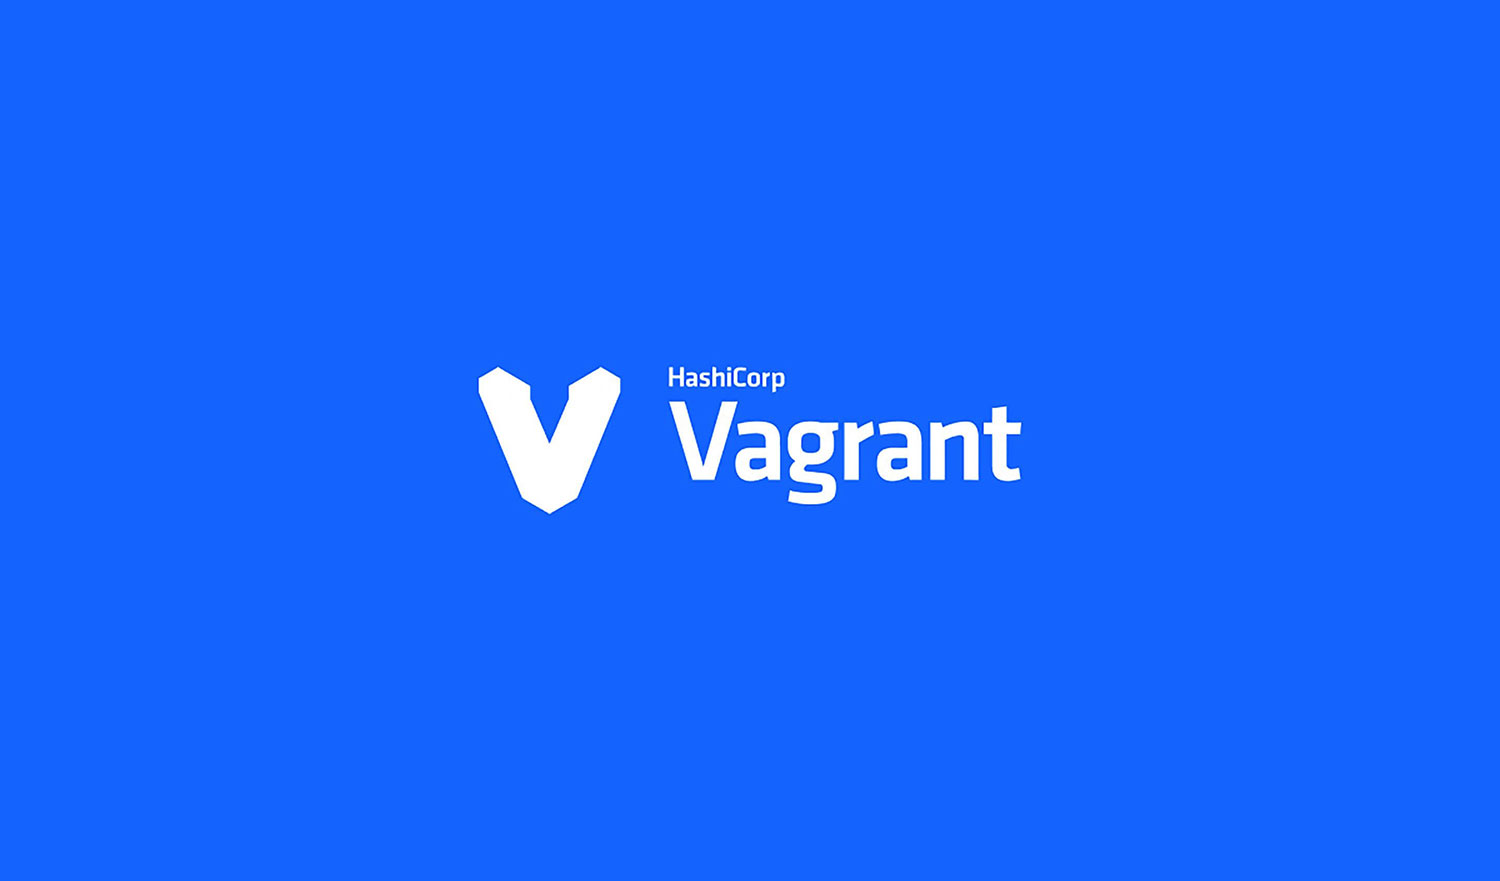 Vagrant open-source software brand logo